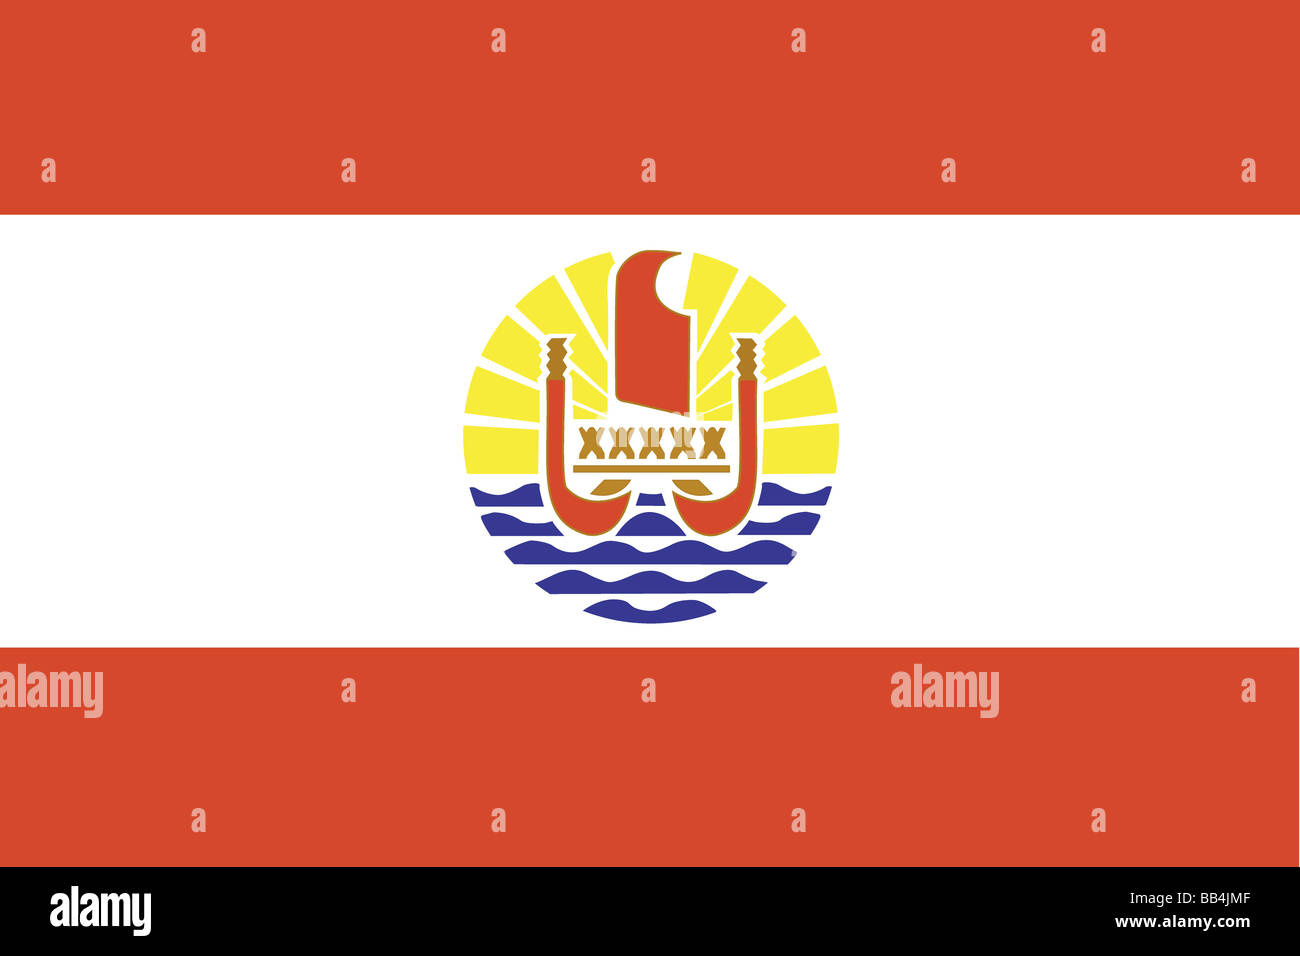 Flag of French Polynesia, an overseas territory of France in the South Pacific Ocean. - Stock Image